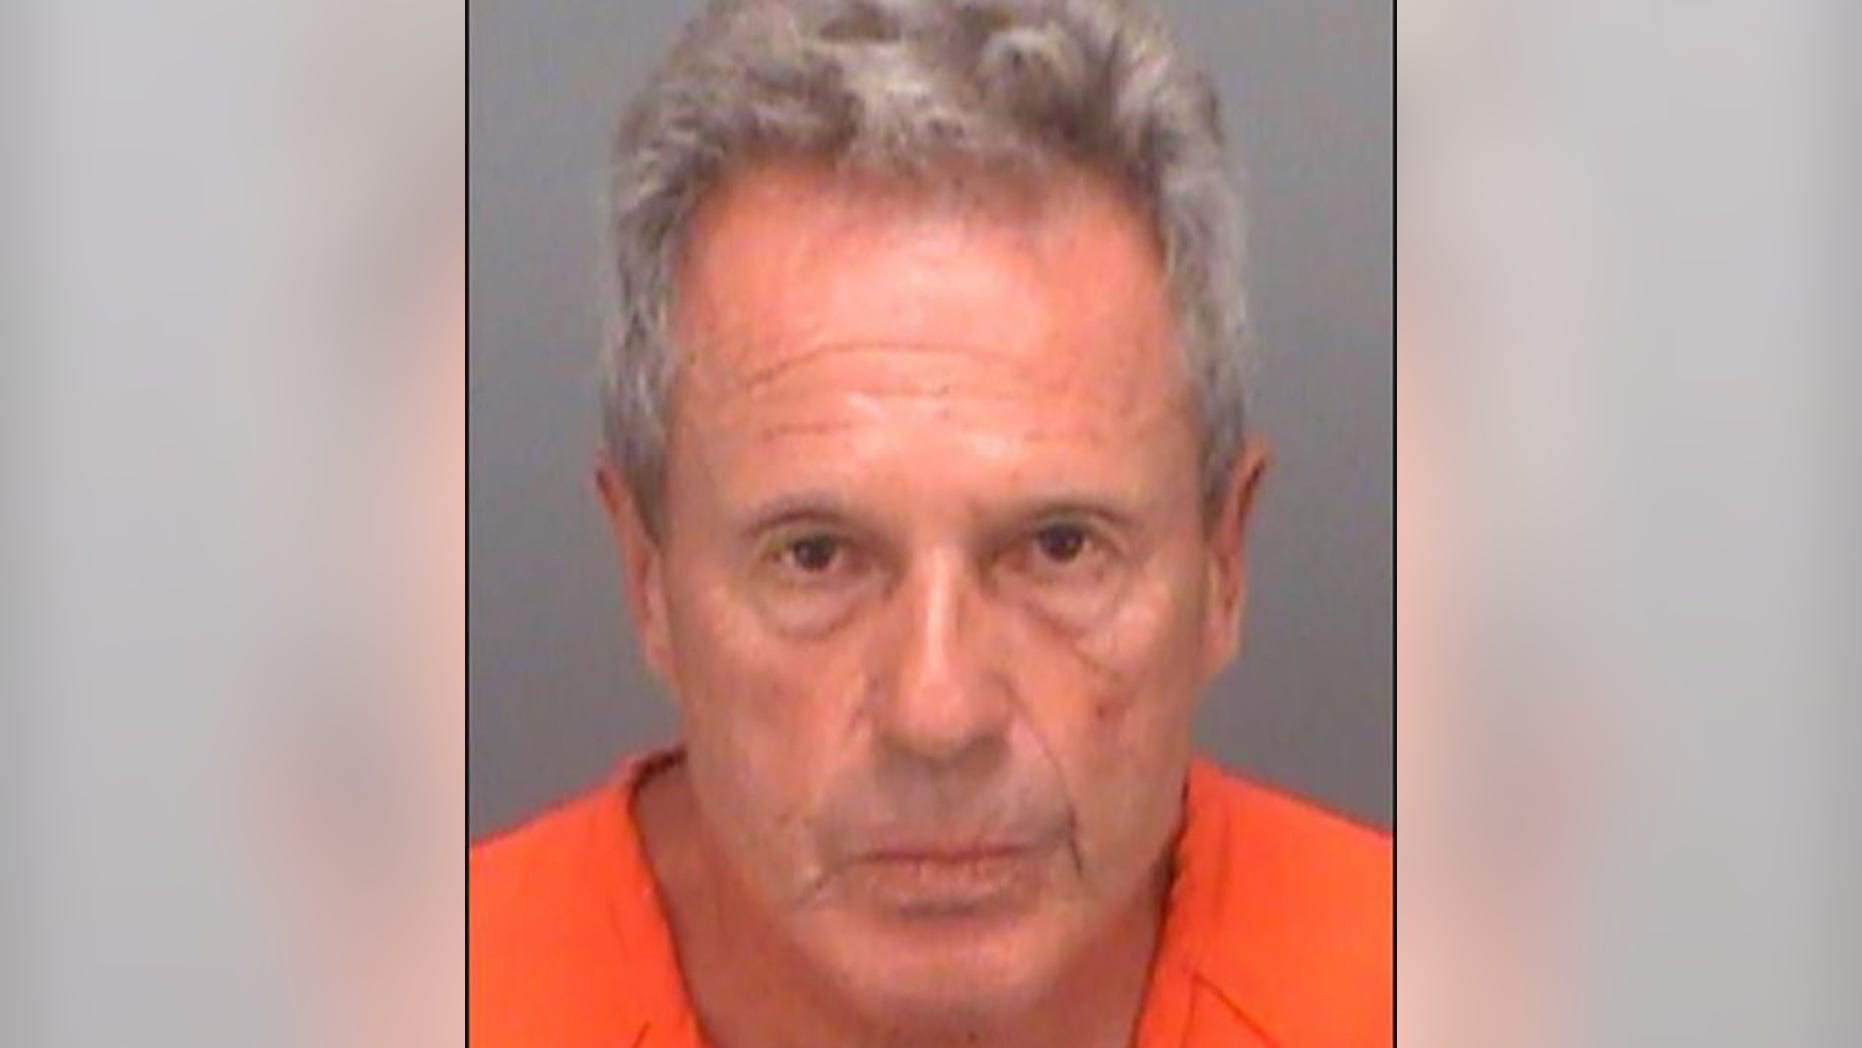 Joel William Benjamin, 71, was arrested for allegedly using a water gun to shoot his own bodily fluids at a woman walking her dog.